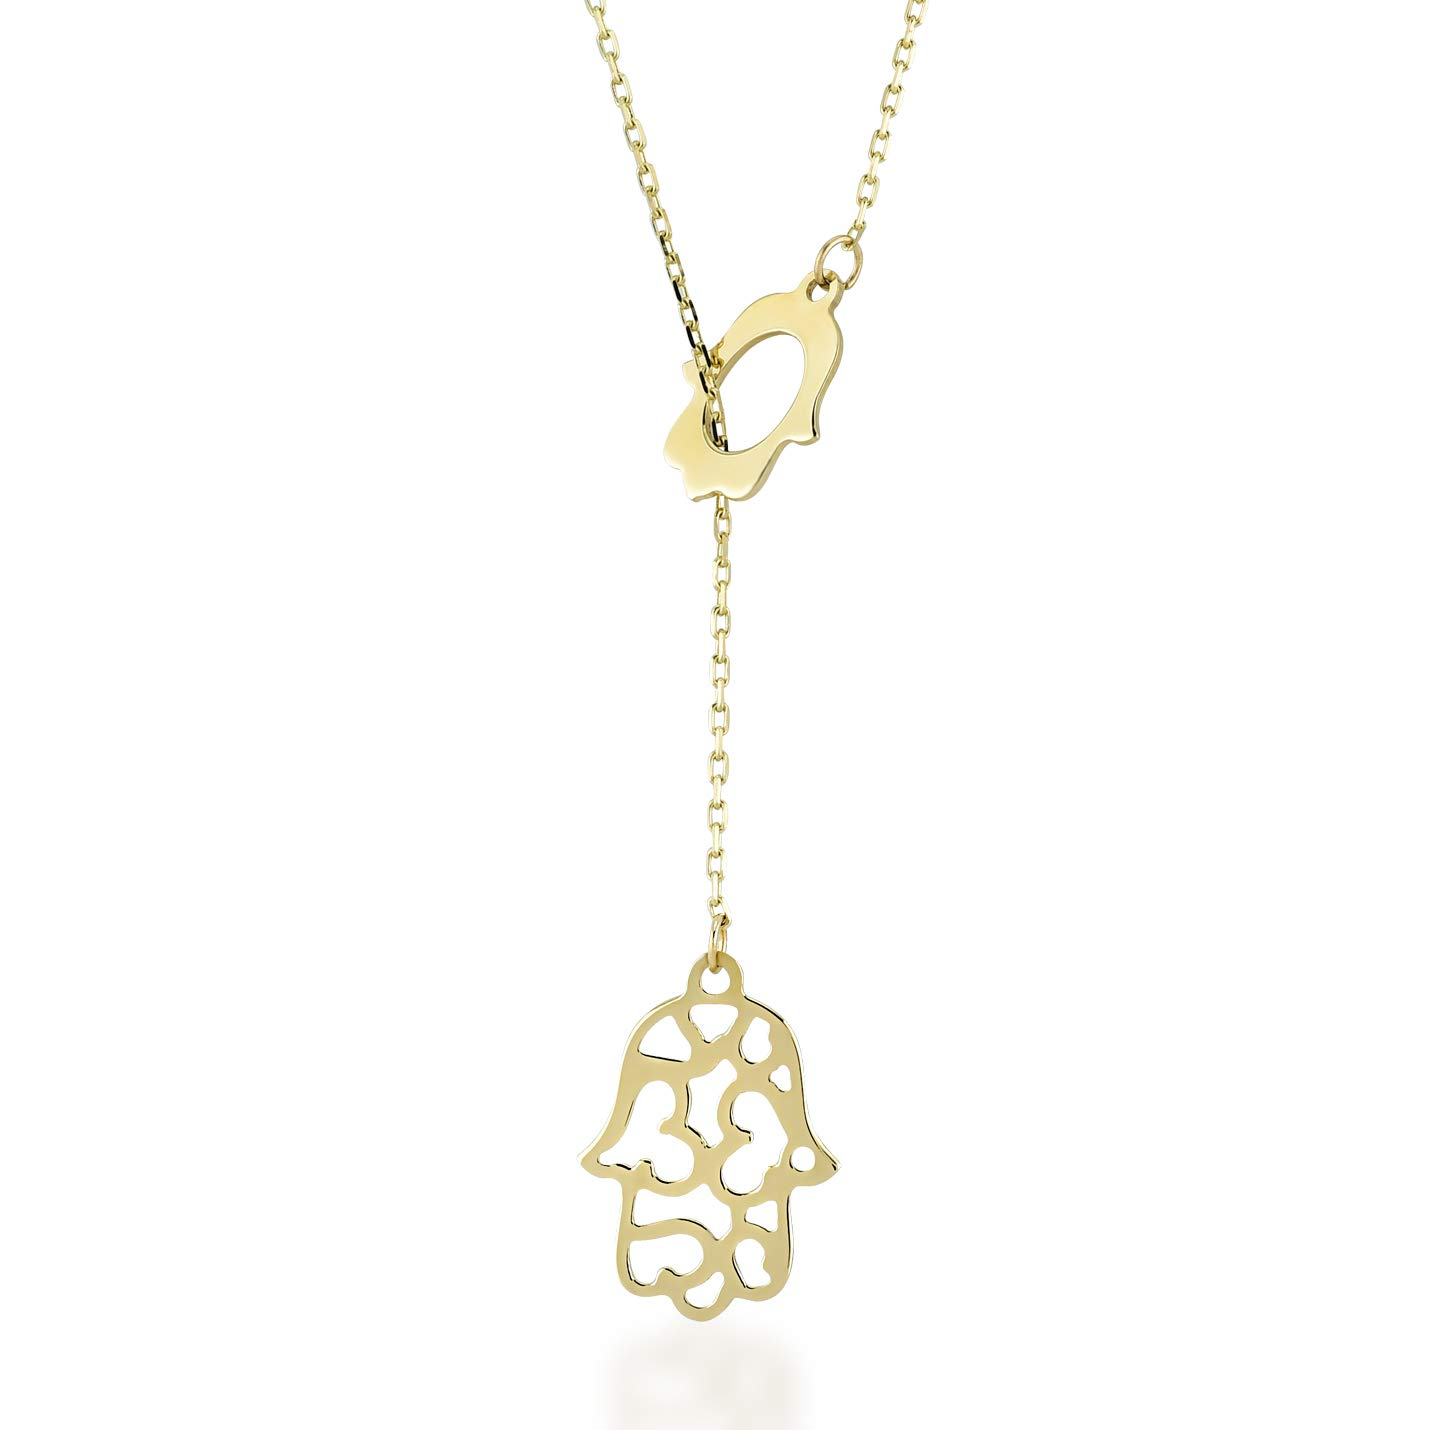 Gelin 14k Yellow Gold Hamsa Hand of Fatima Chain Necklace for Women - A Perfect Surprise Gift for Her, 18 inch by Gelin Diamond